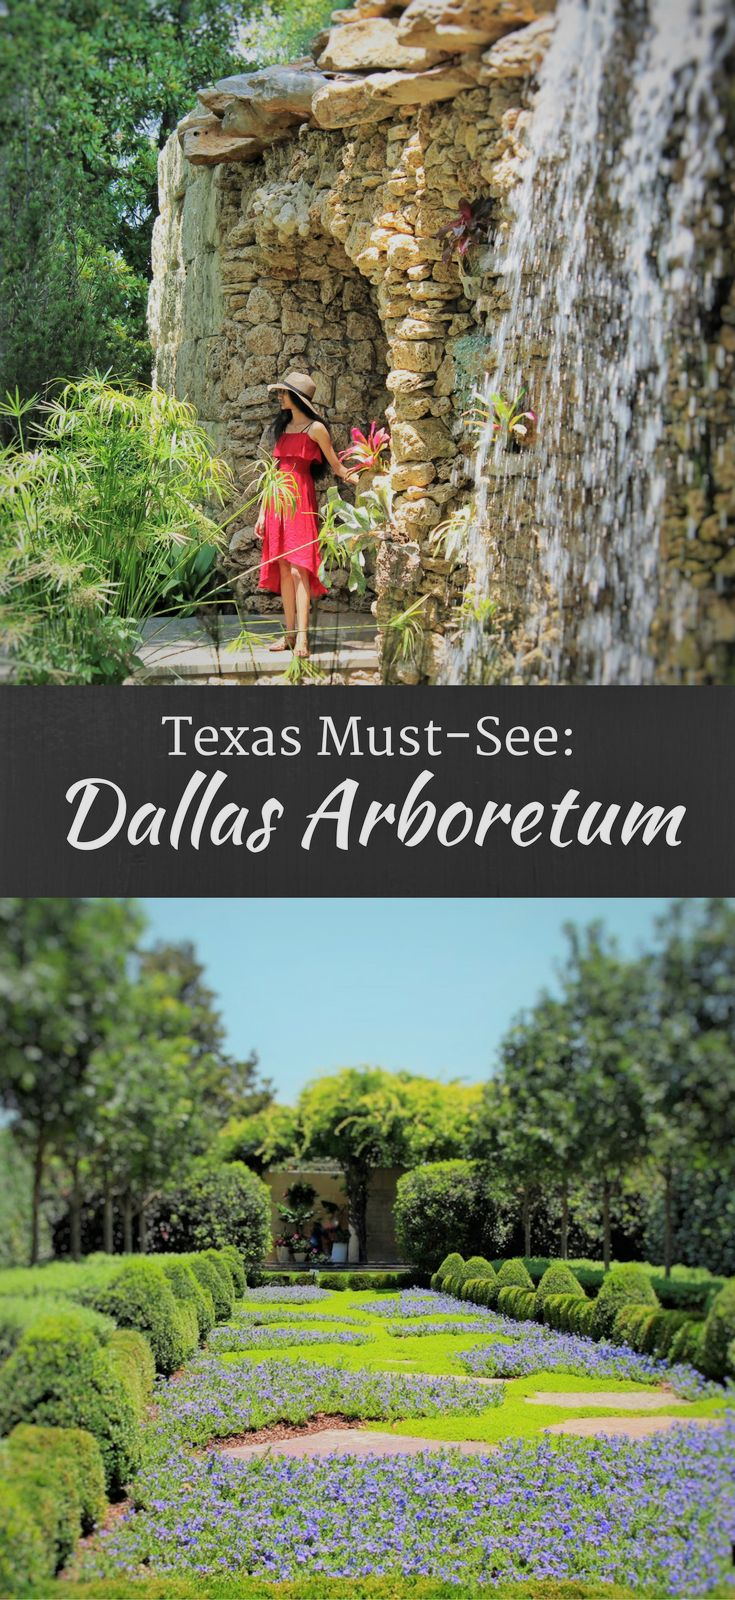 Looking for a guide to the Dallas Arboretum? Look no further. This guide contains all the most Instagrammable spots in this Dallas must-see.